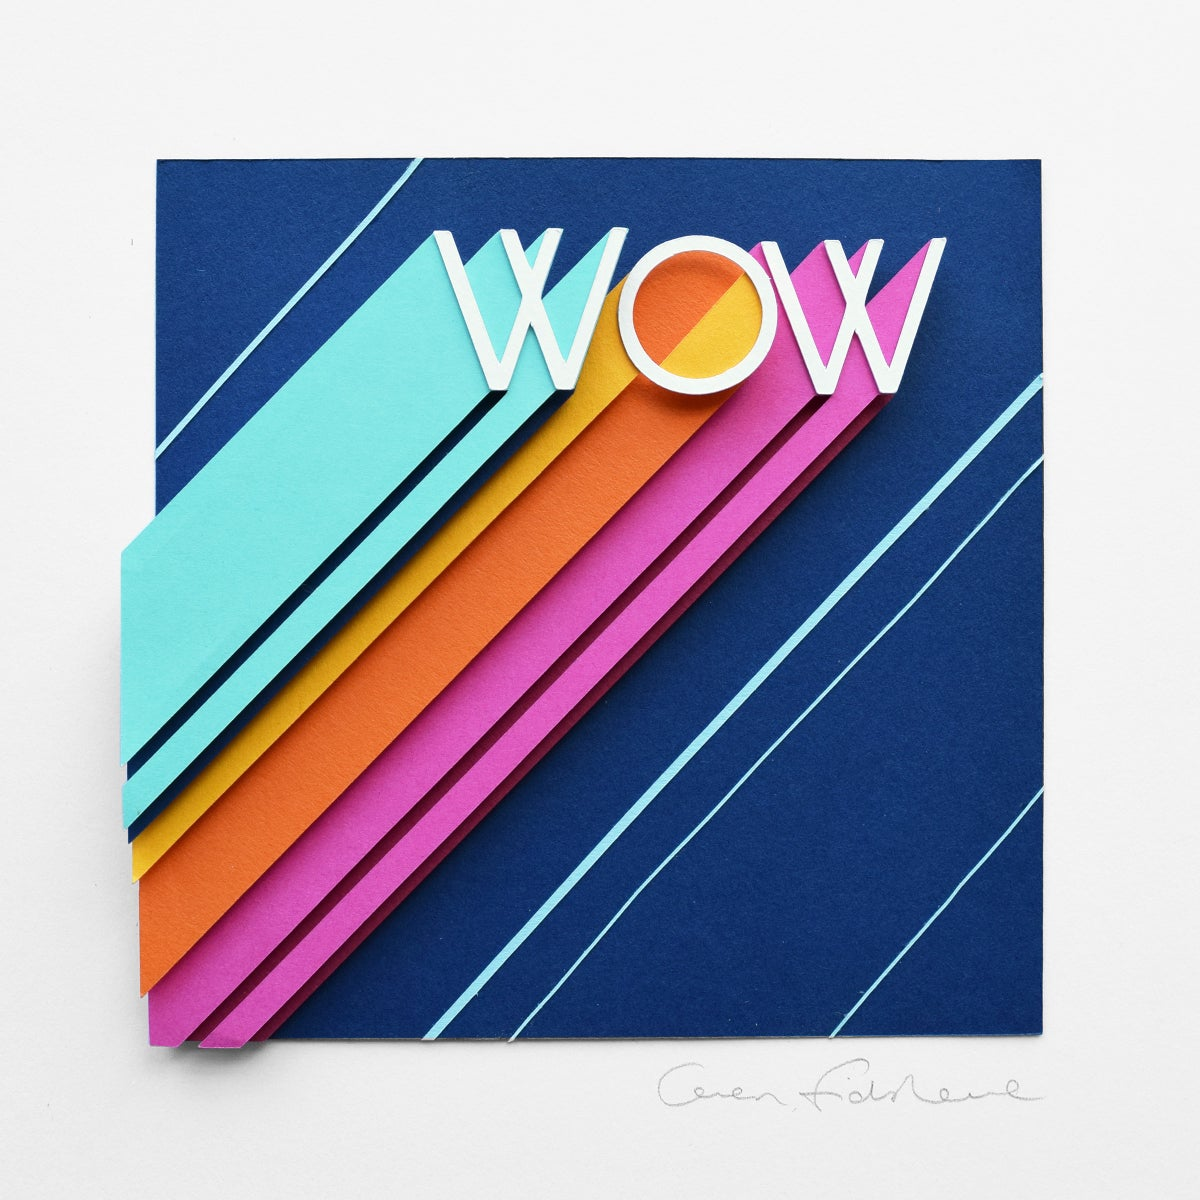 Image of WOW – Framed Original Paper Cut Artwork